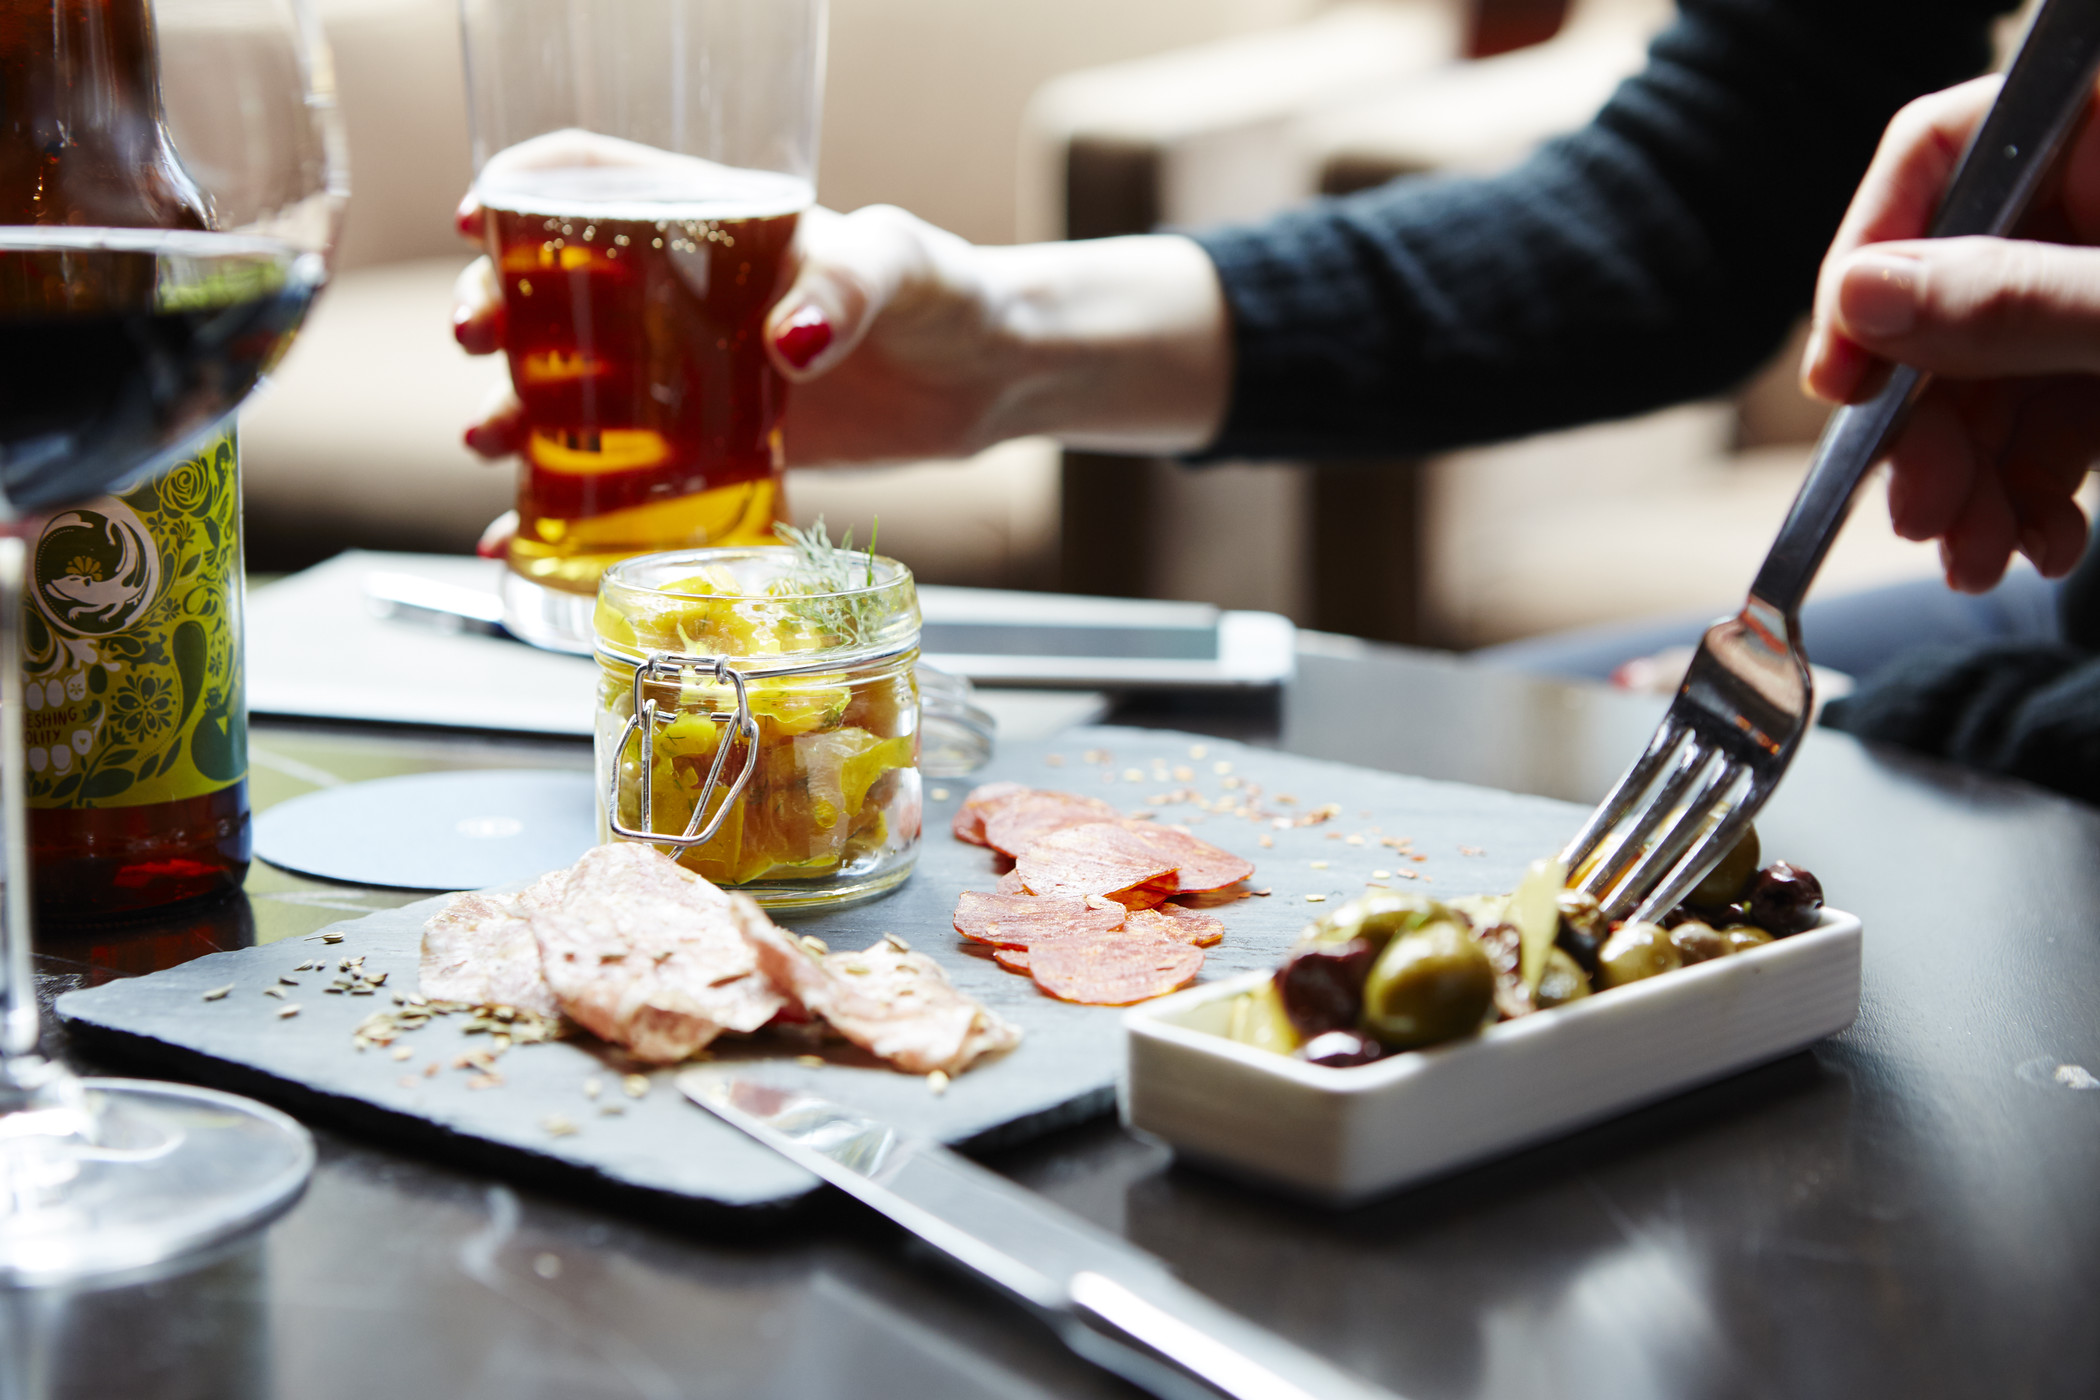 Sheraton - Charcuterie with craft beer